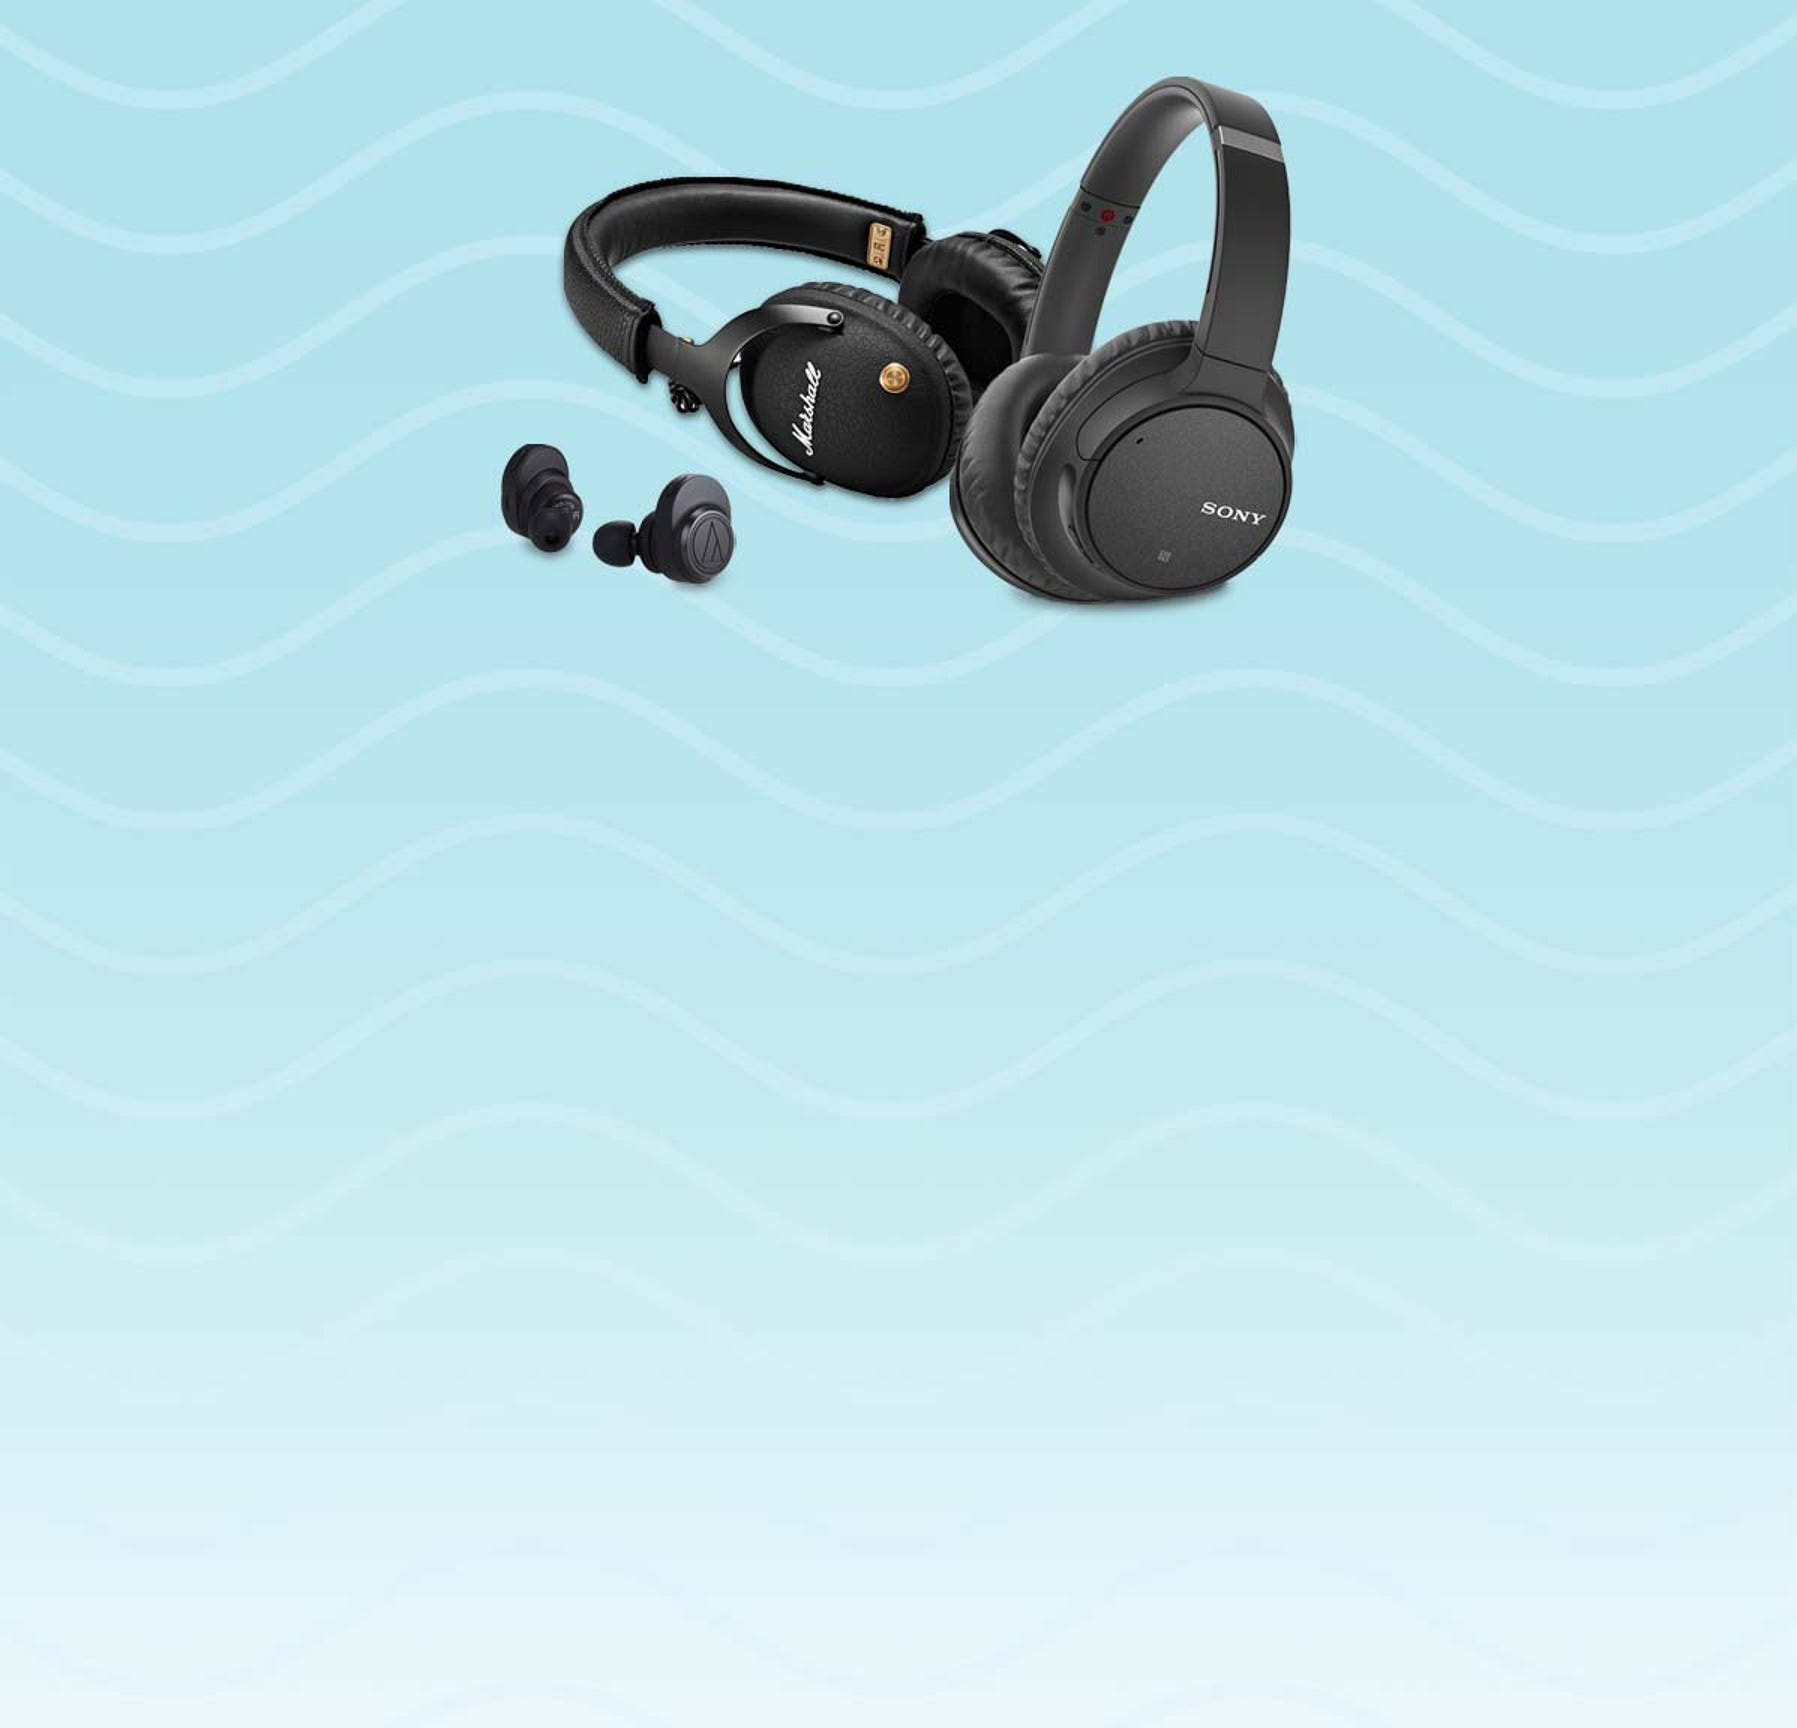 7c1e3dd8c33 Headphones: Bluetooth, Wireless, Noise Canceling | Best Buy Canada